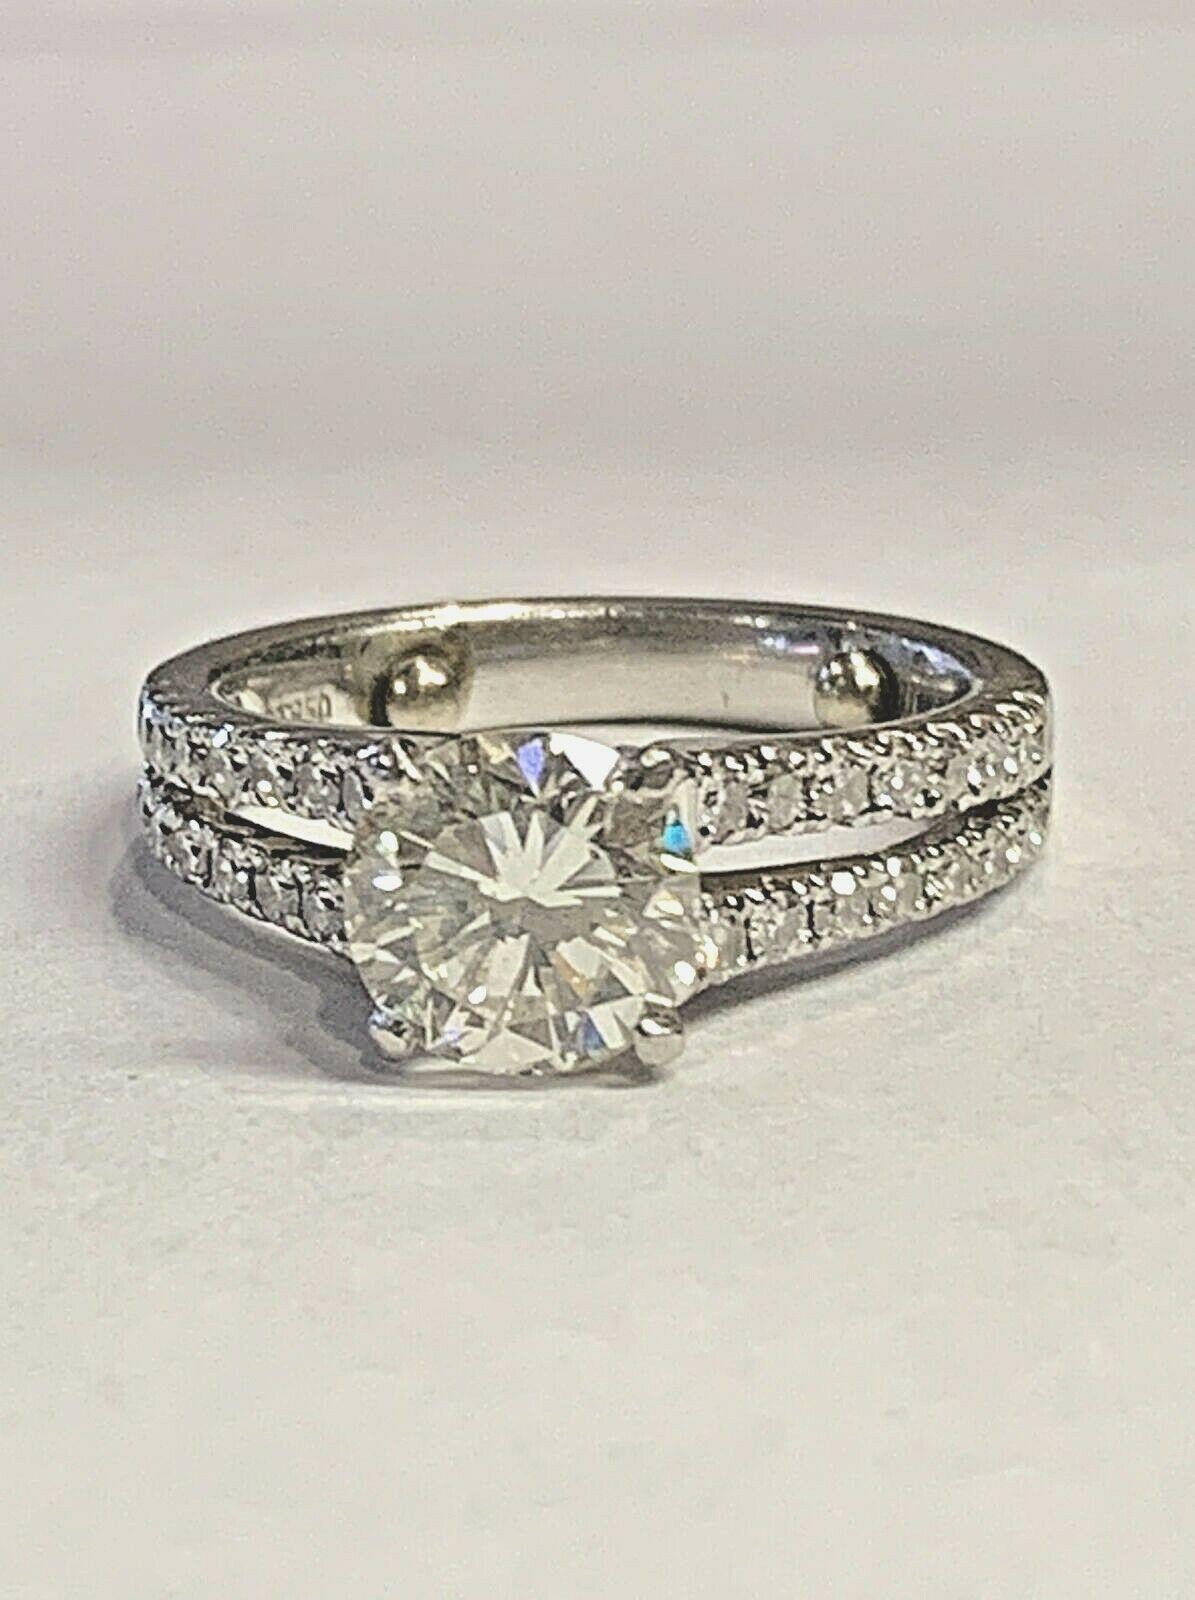 Diamond Engagement Ring 1.25 ct. J SI1 Center 1.65 tcw 950 Platinum Size 3